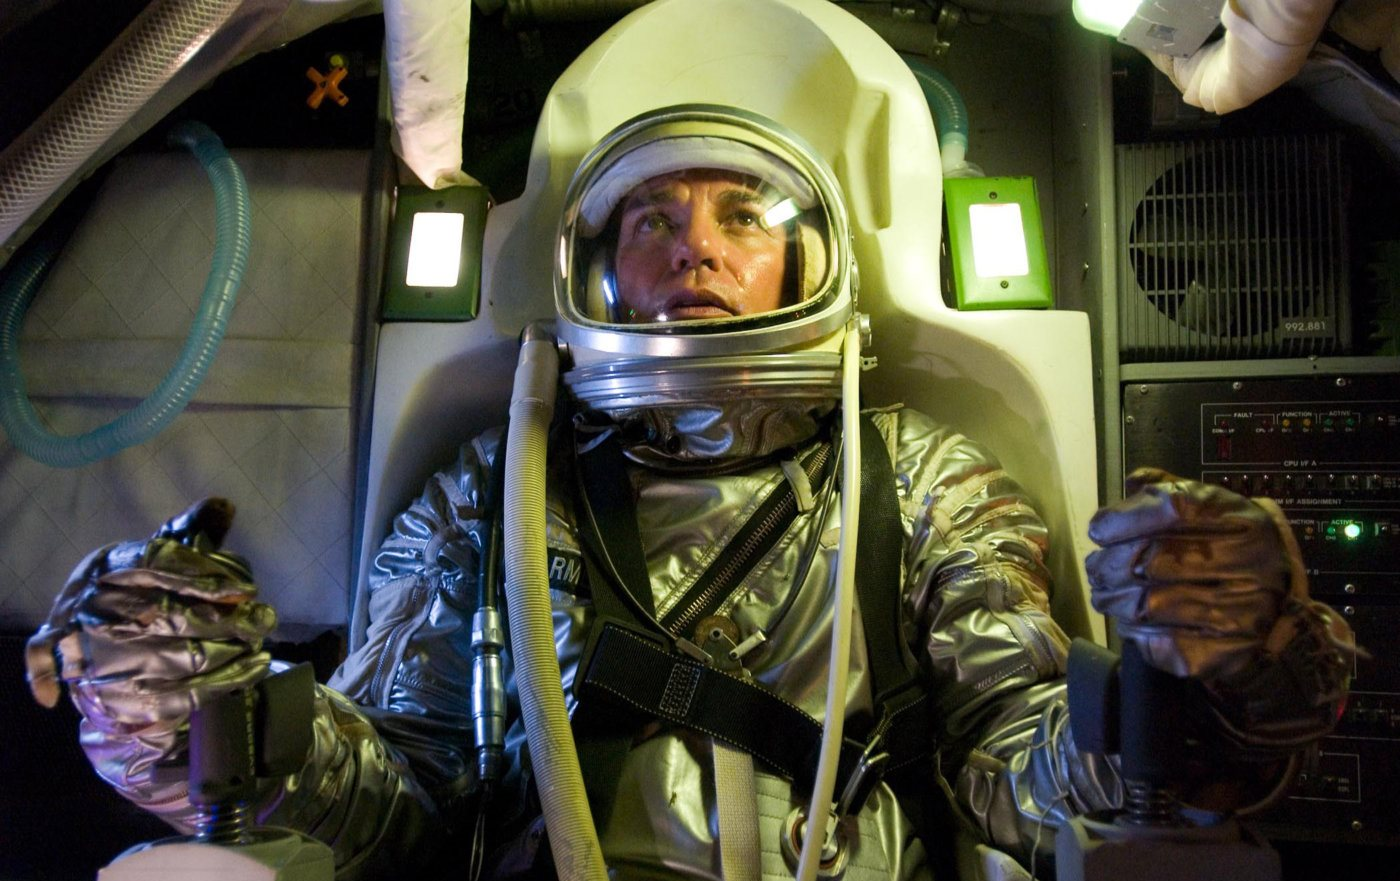 Billy Bob Thornton prepares to launch in his rocket in The Astronaut Farmer (2006)